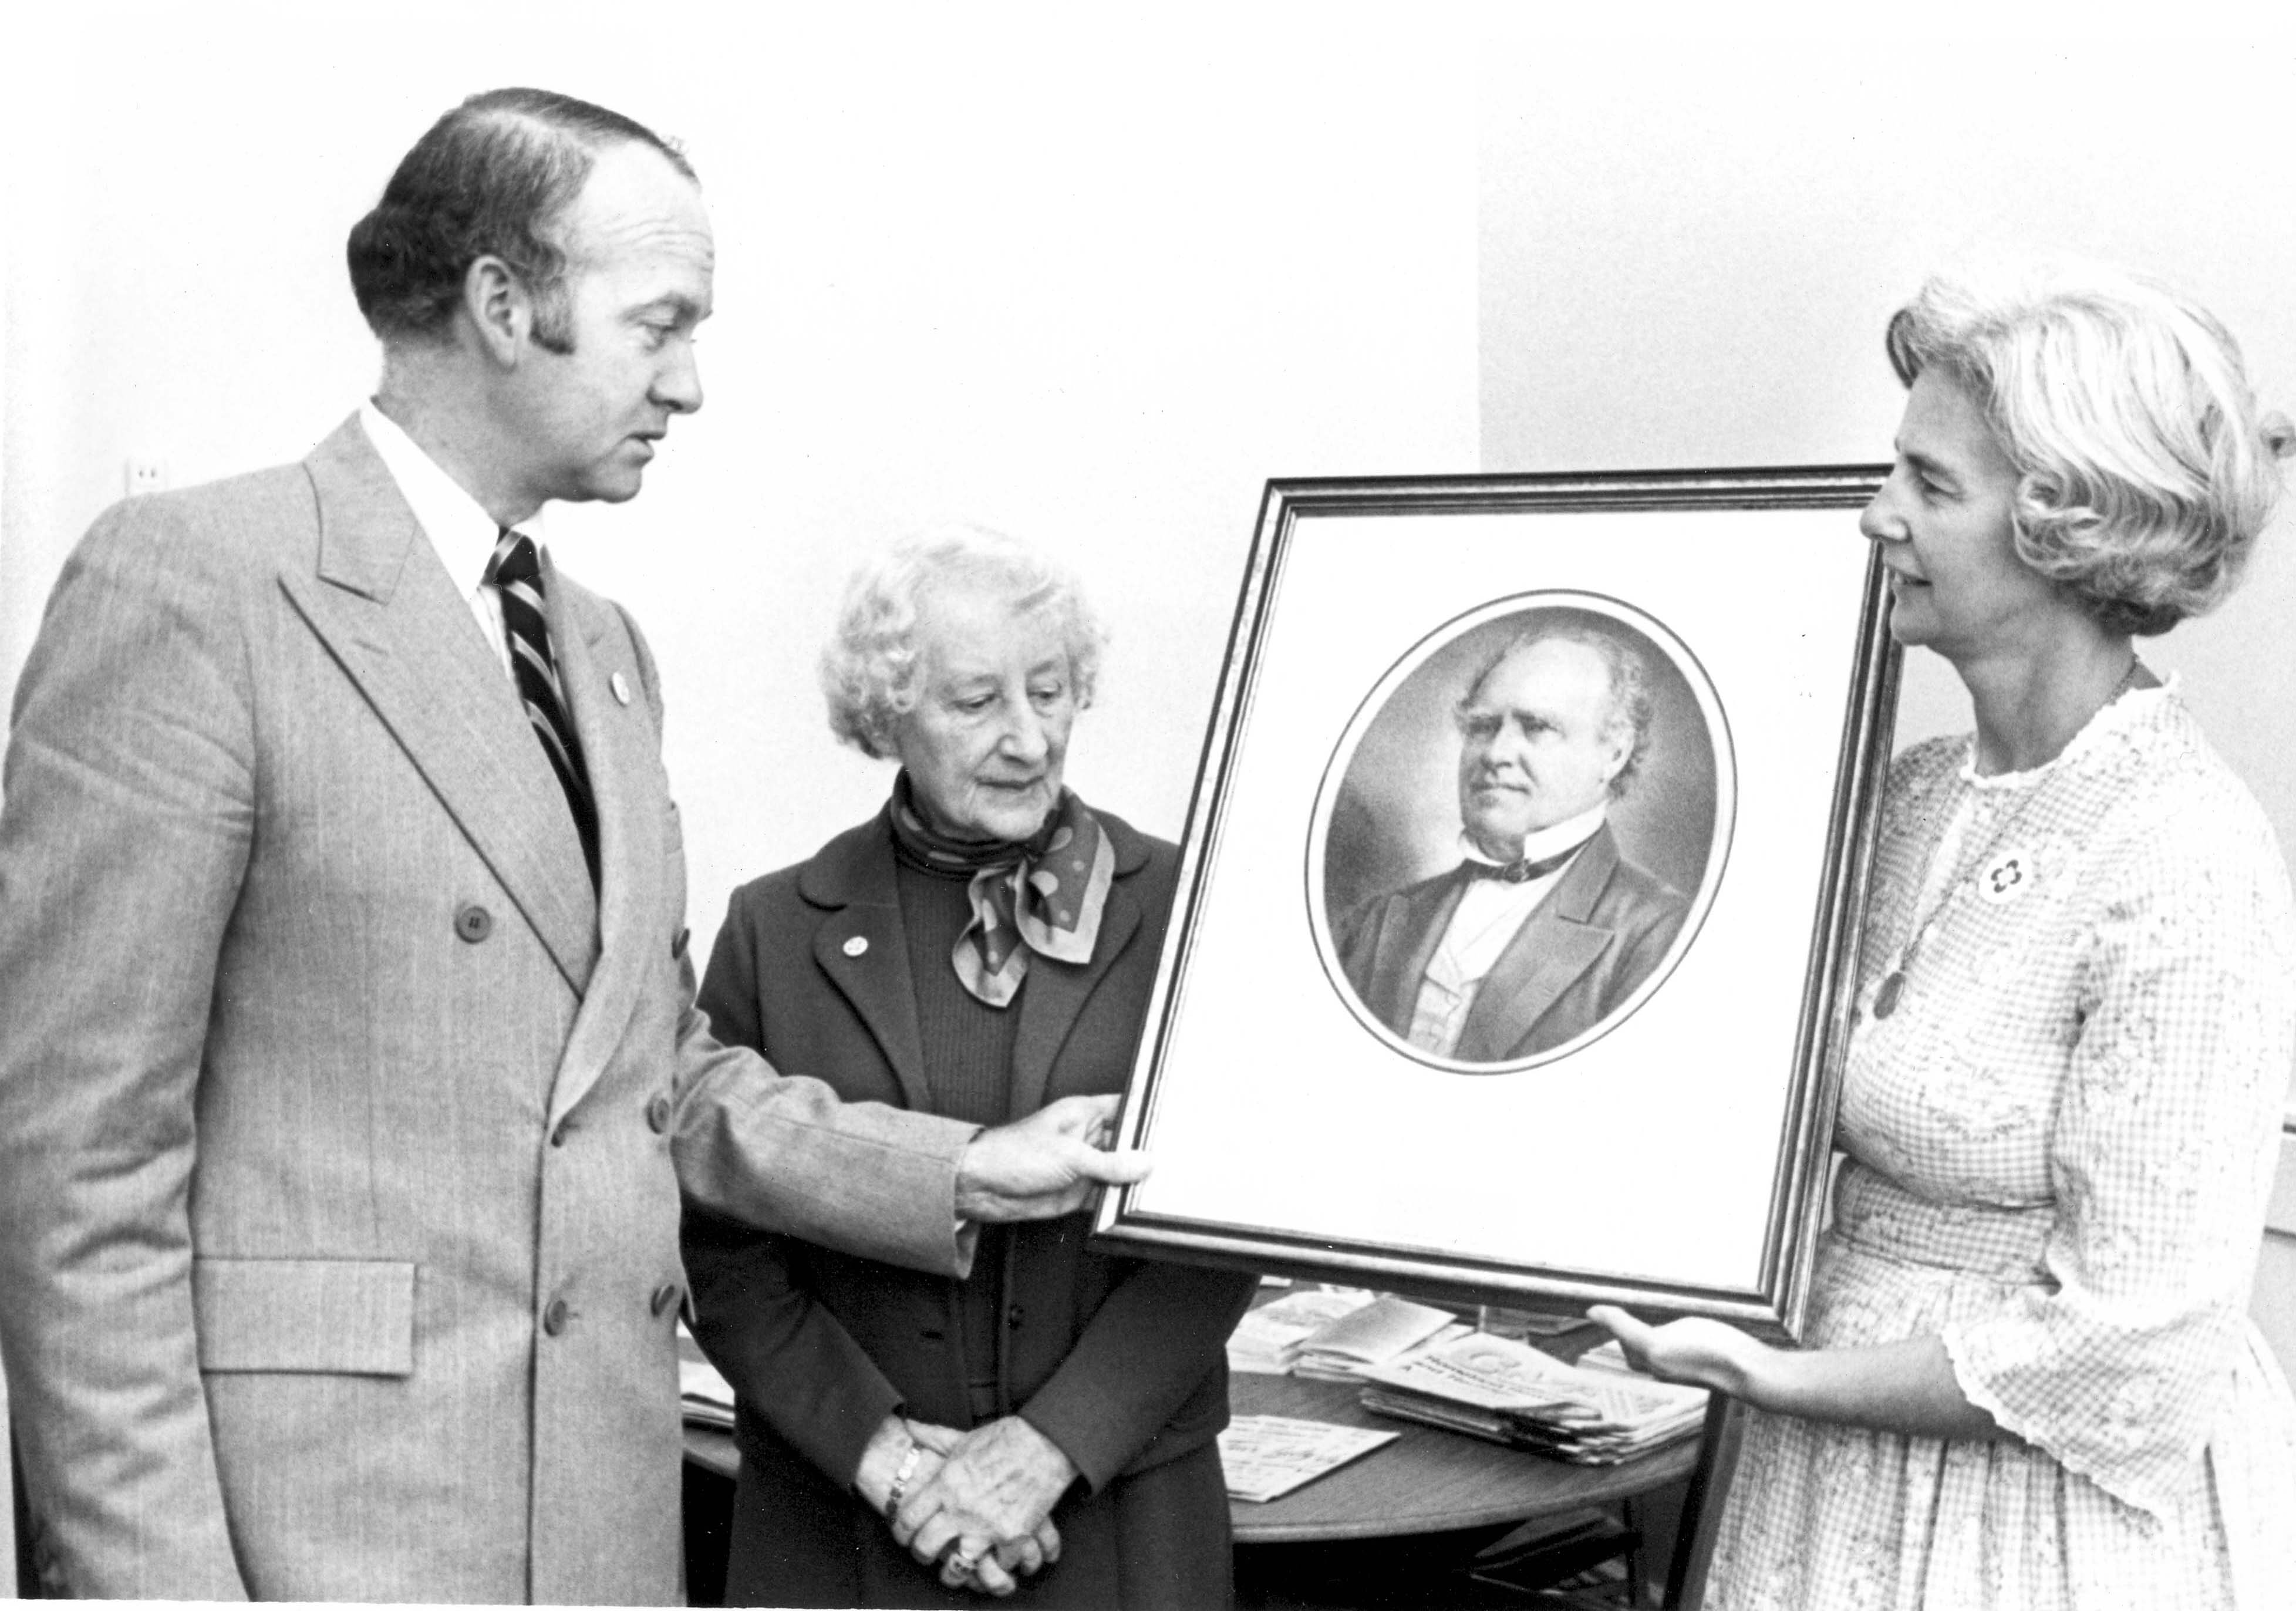 Black & white photo of an event for the ceremonial presentation of a portrait